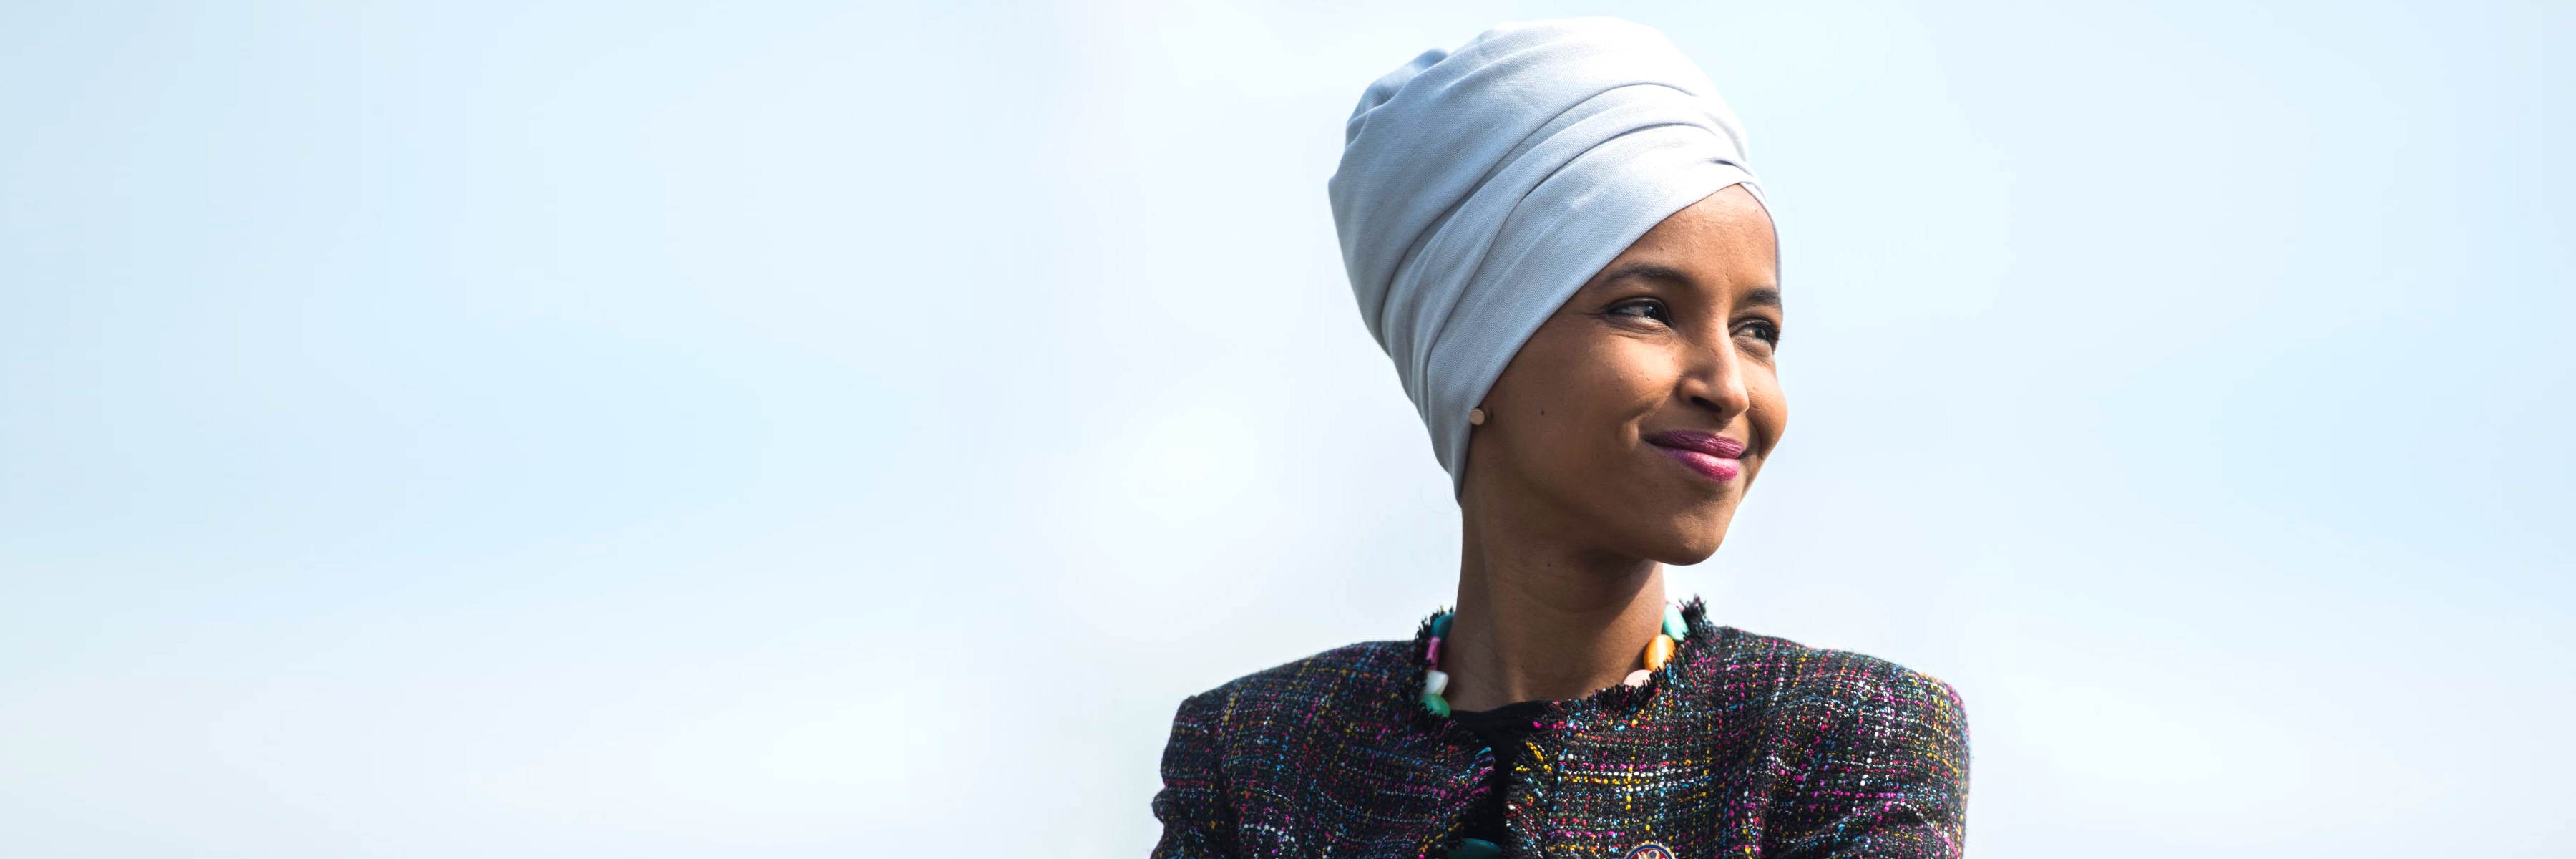 Join Rep Omar on the path to peace